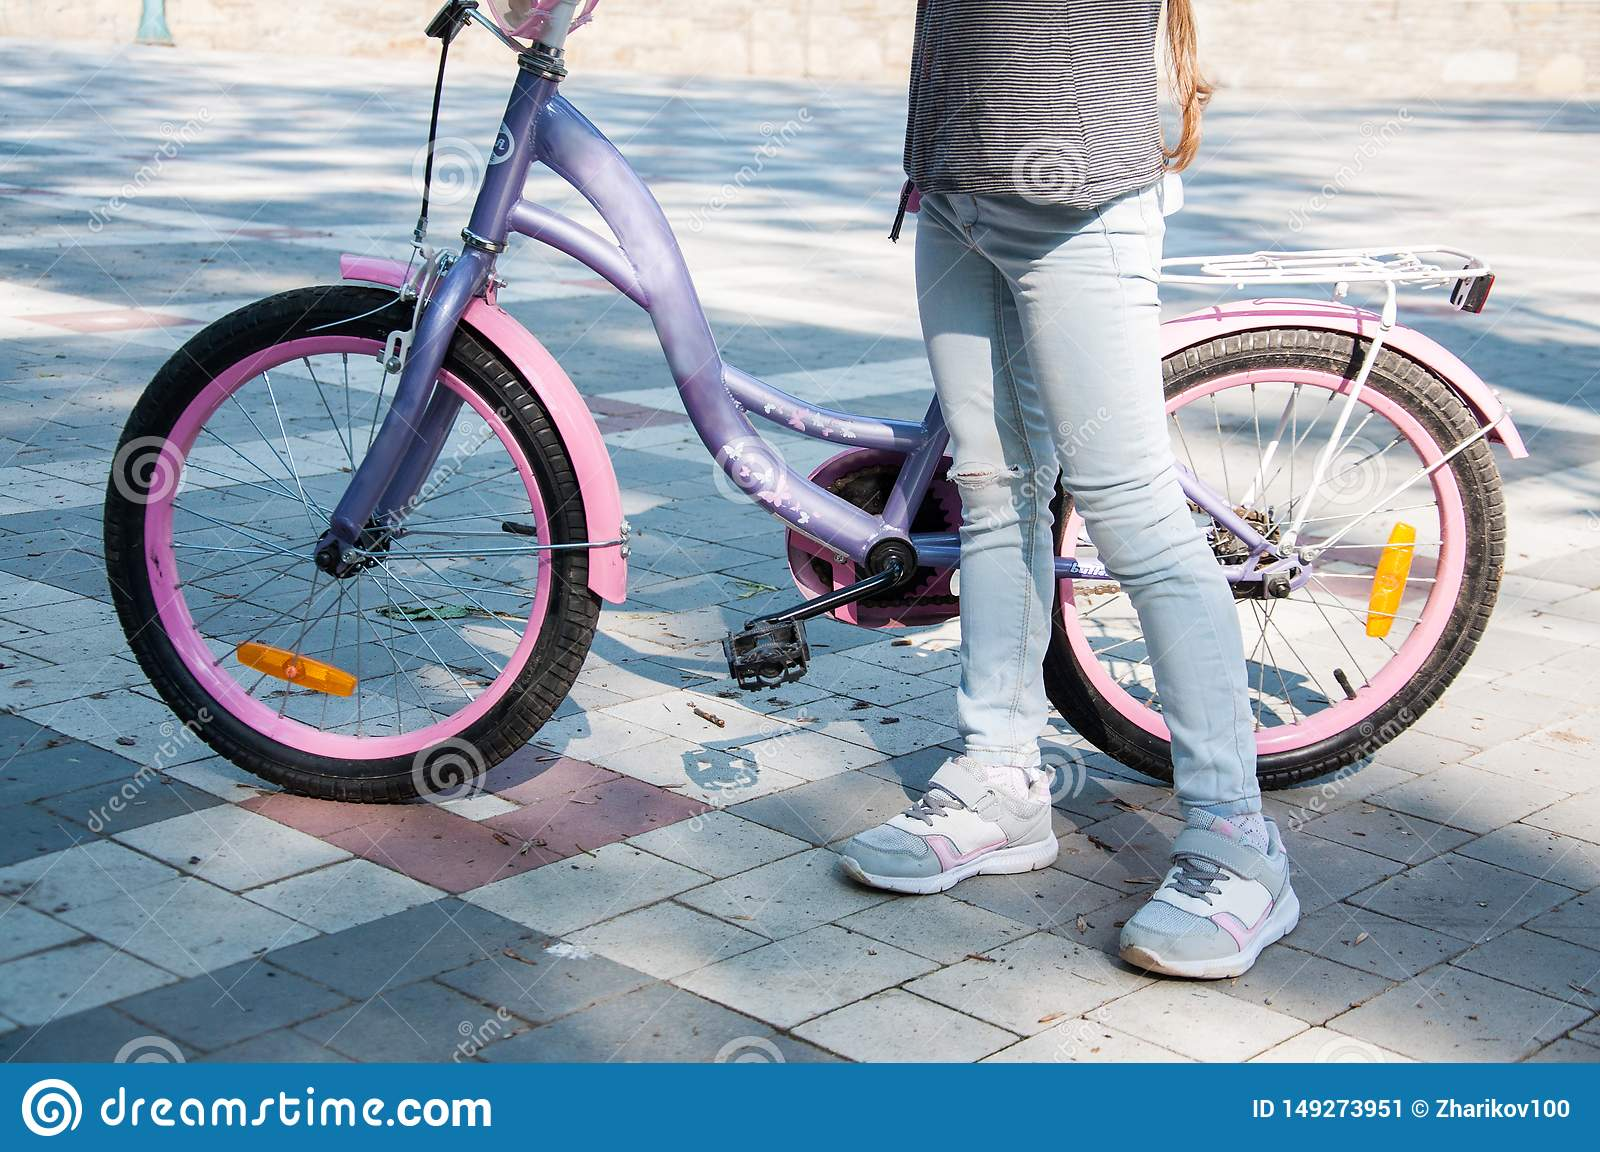 Young girl in denim pants stands near the bike holding it.